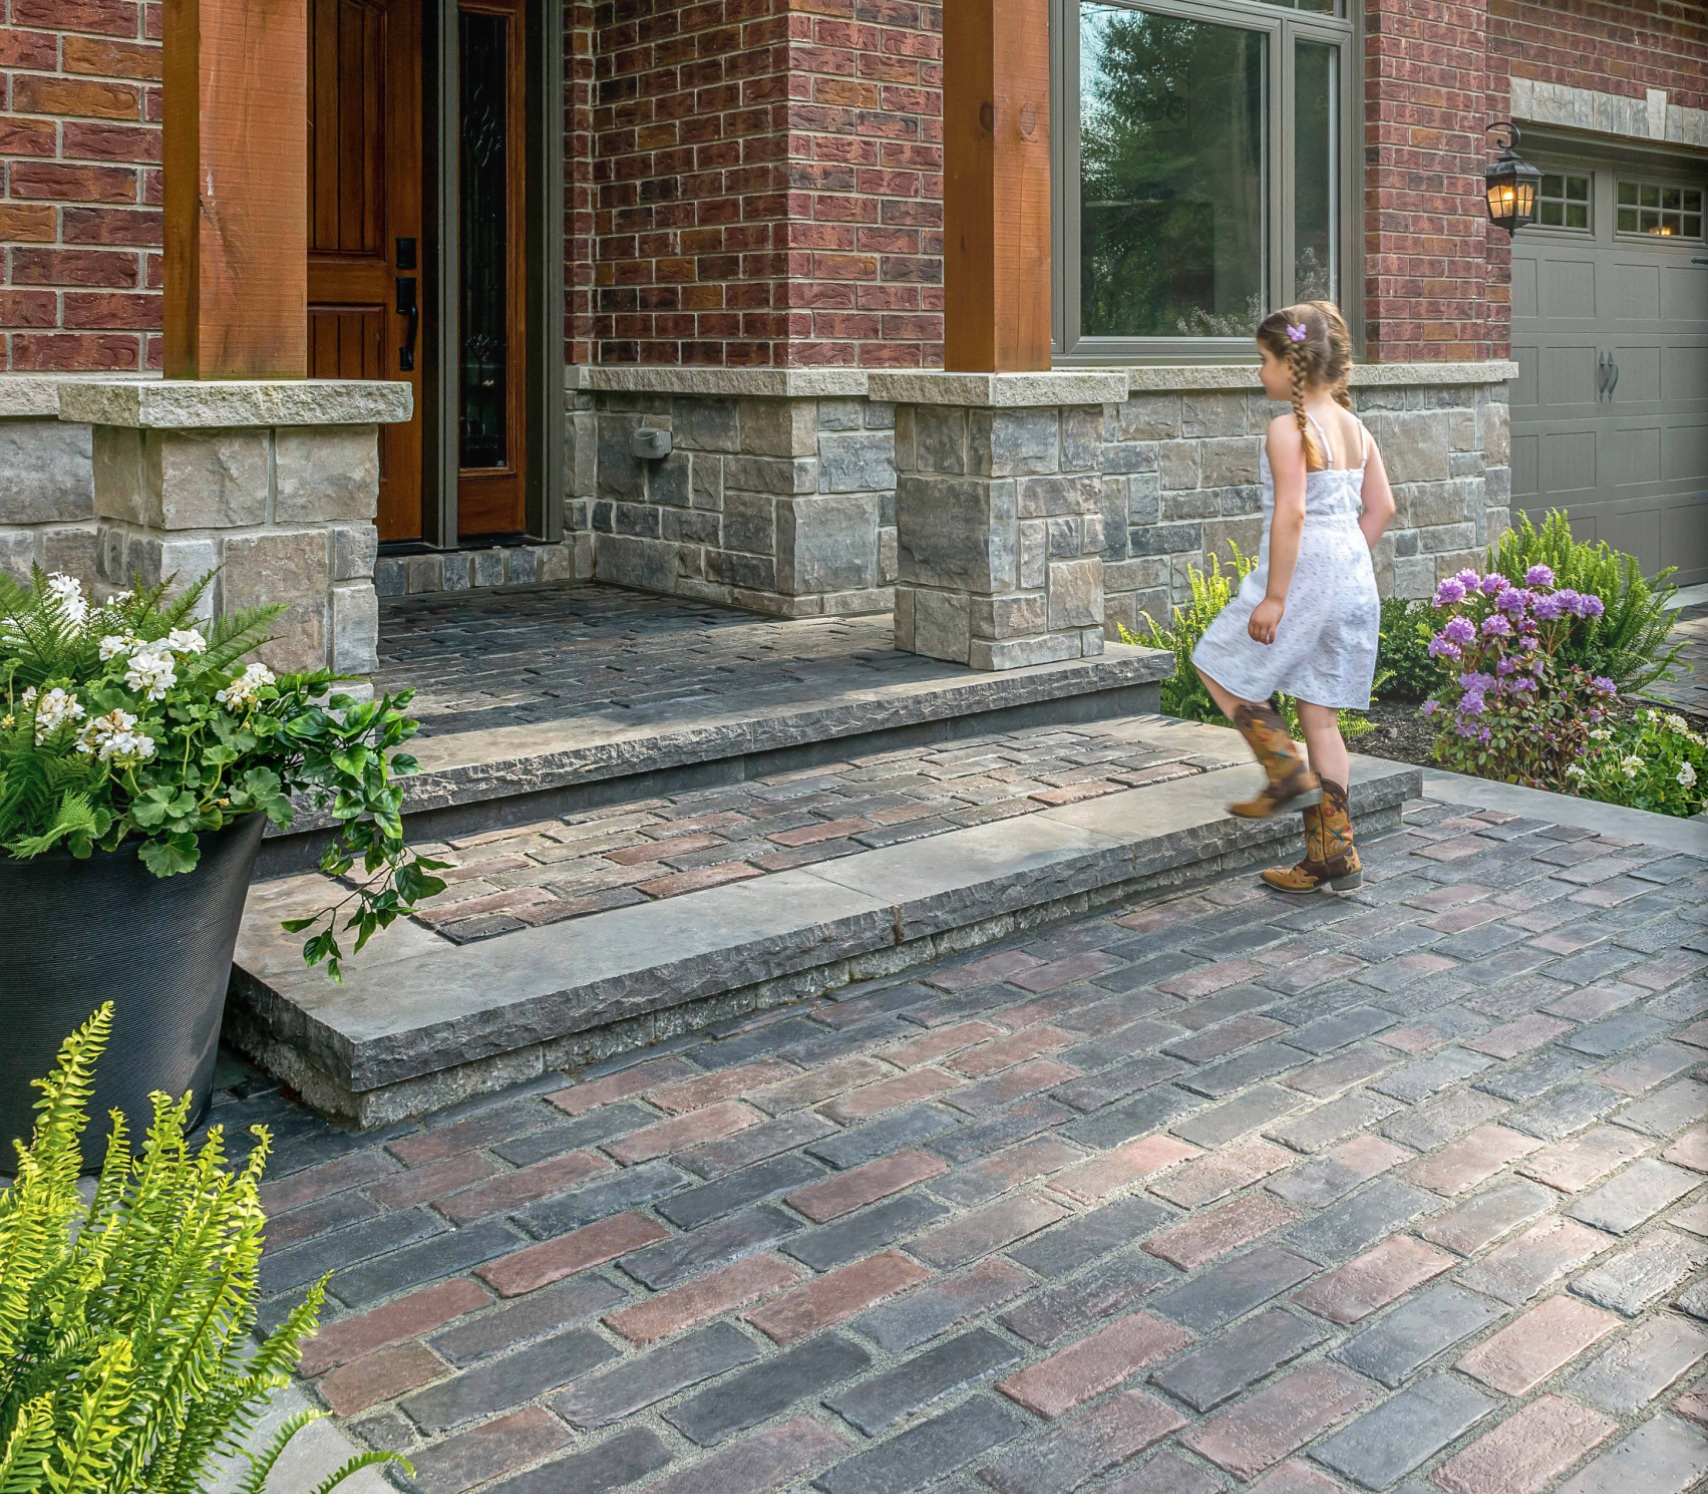 Top quality brick pavers and retaining wall in Shelby Township, MI